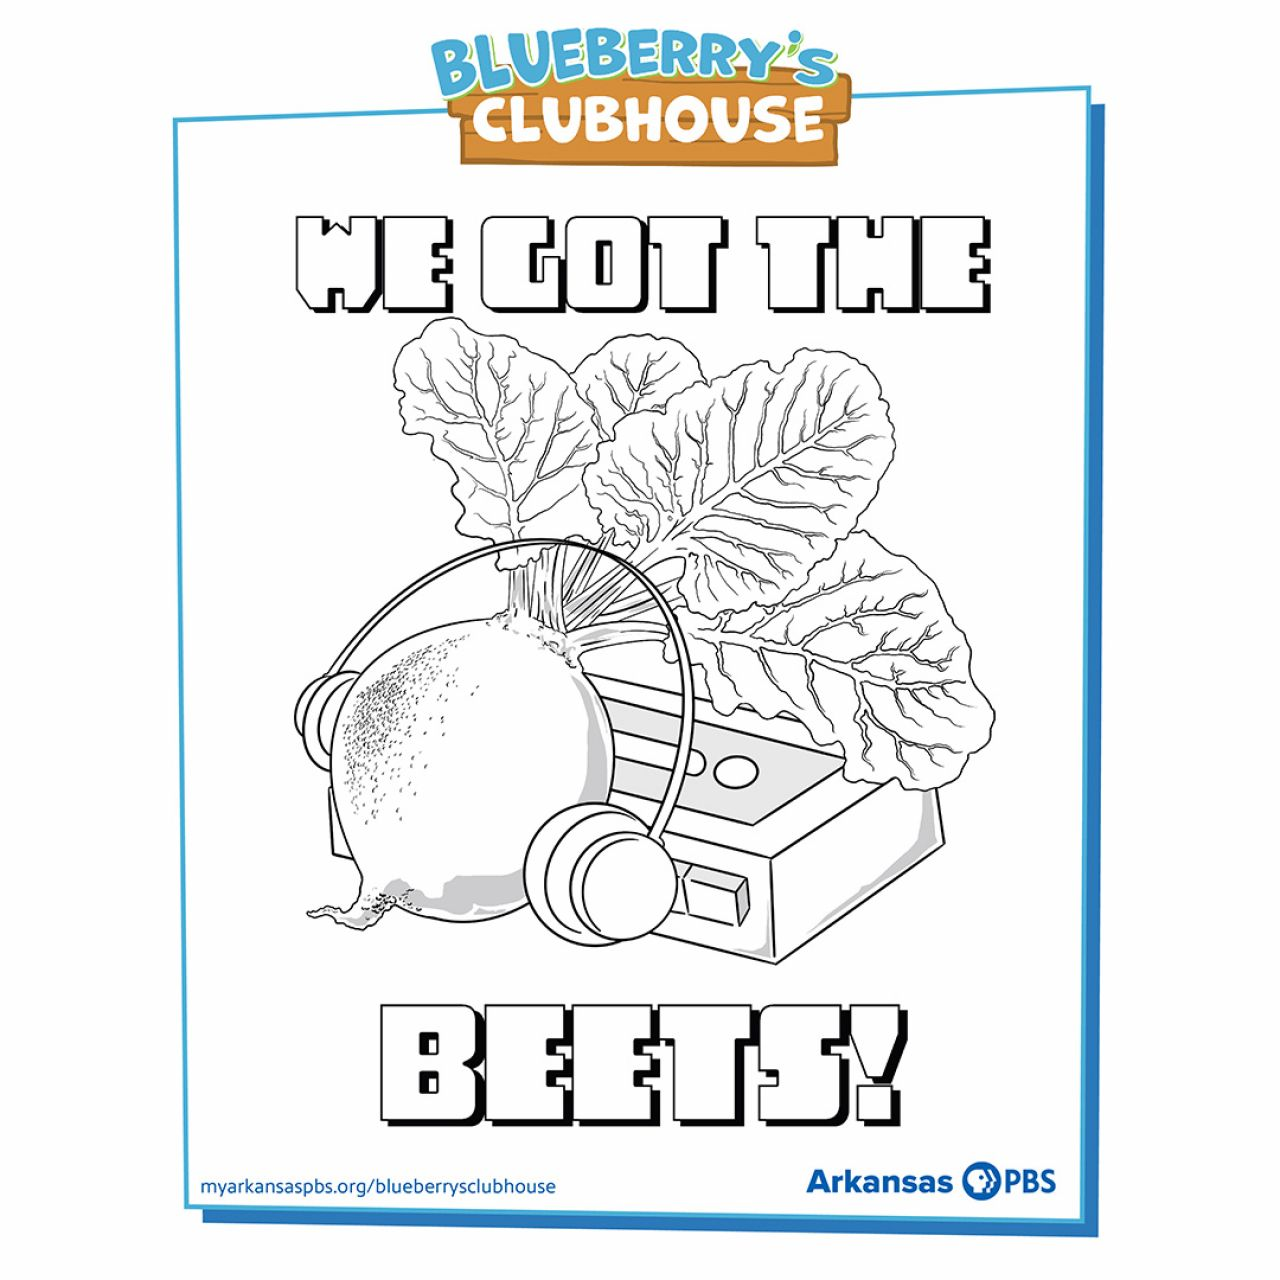 We got the Beets! black and white line drawing Coloring Sheet featuring a beet with a cassette player and headphones inside a colored Blueberry's Clubhouse frame